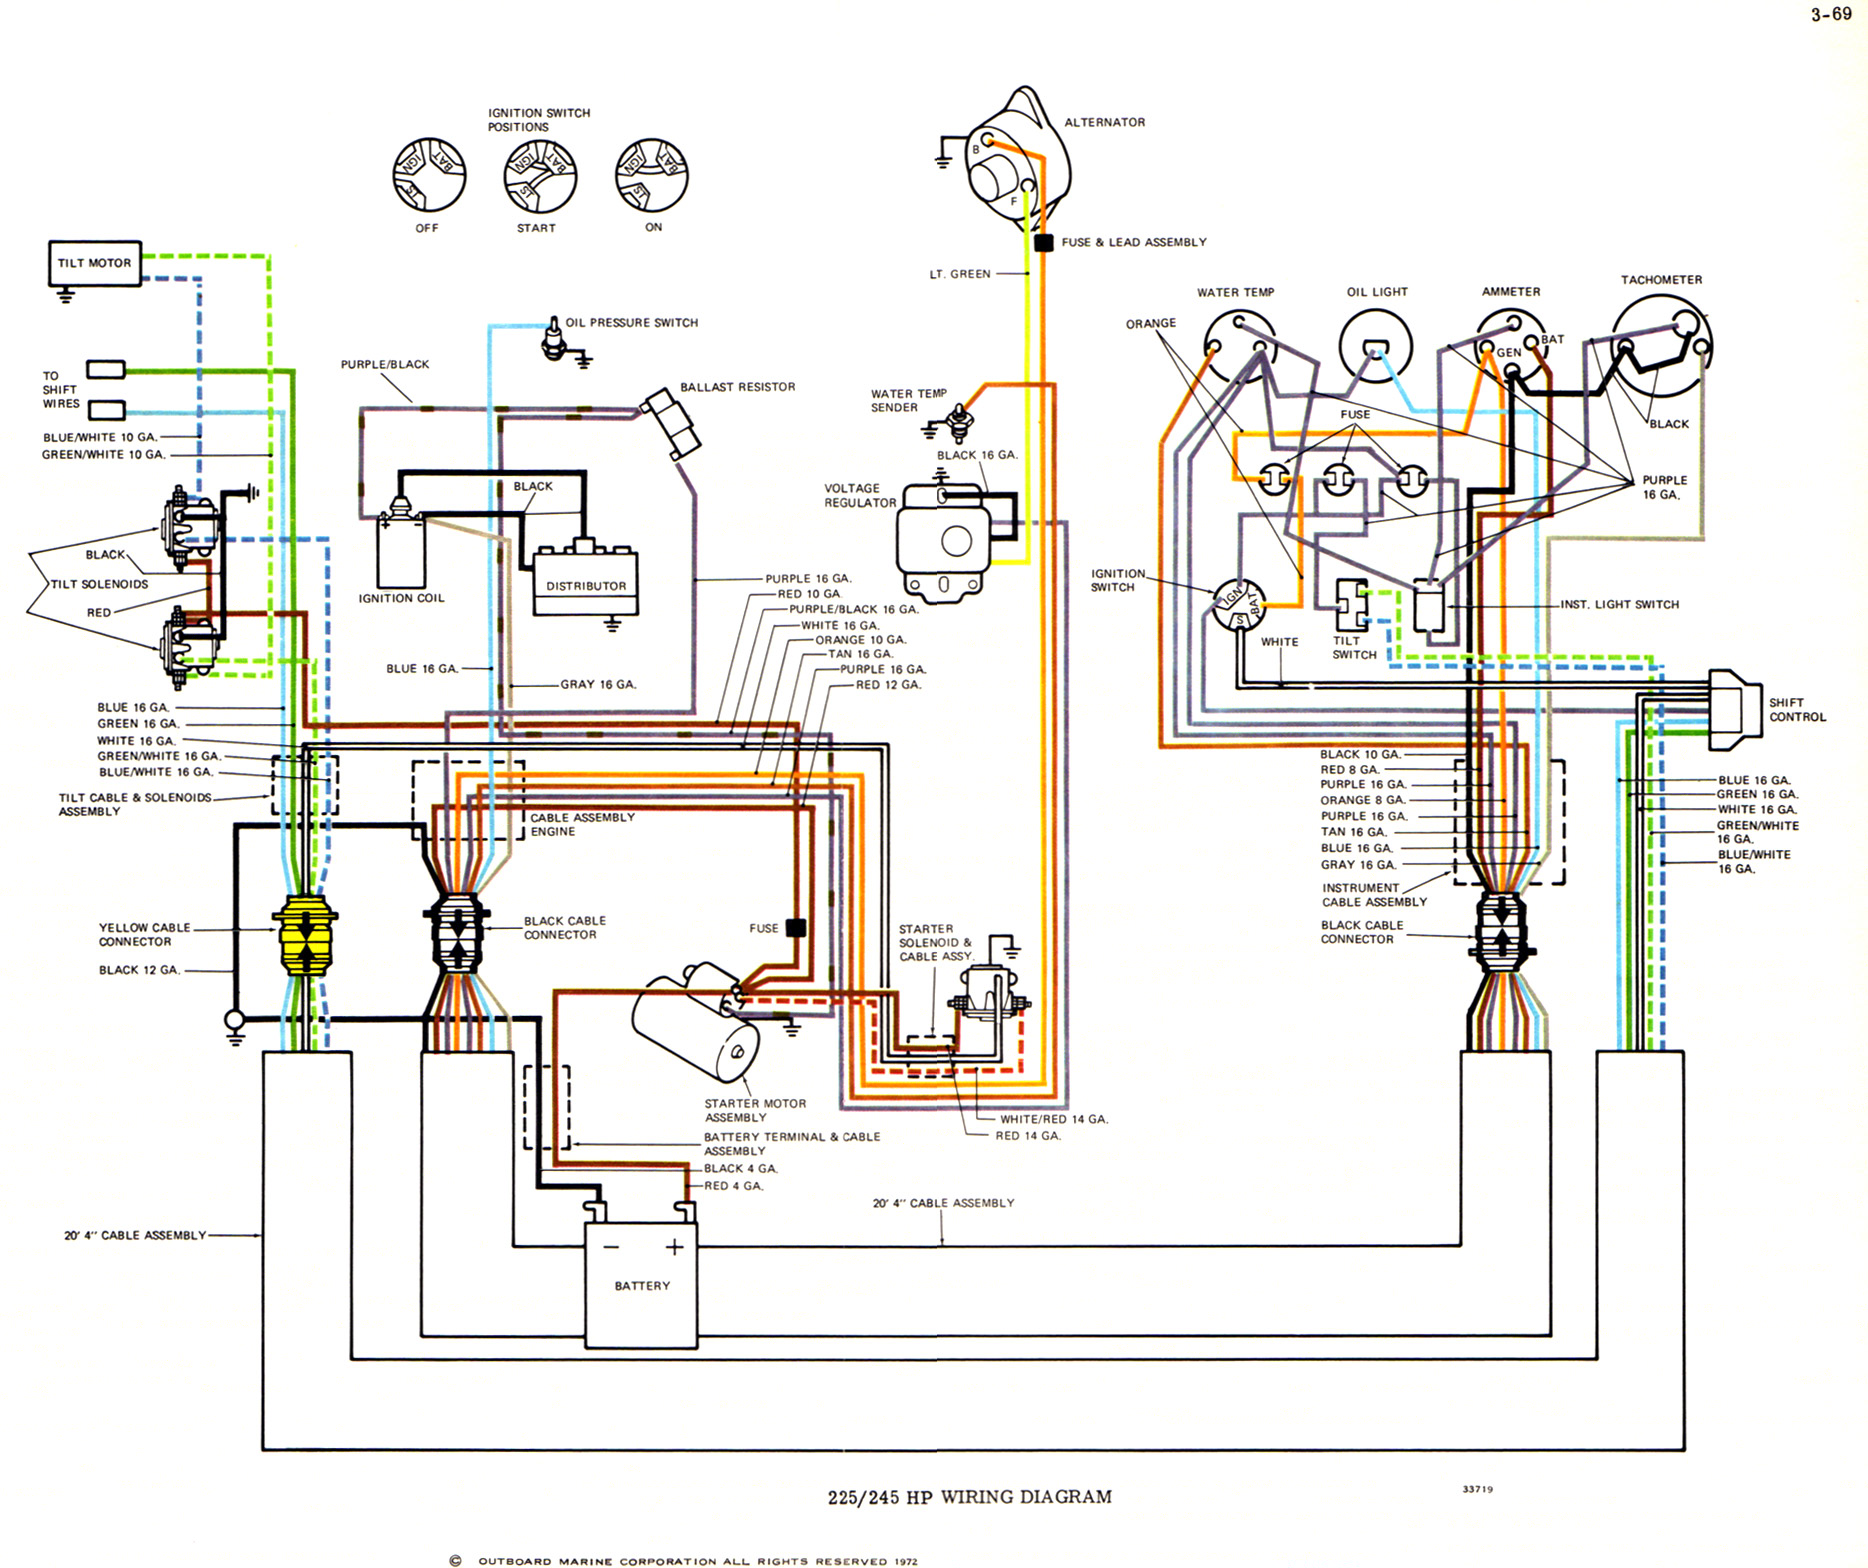 Omc Cobra 3 0 Wiring Diagrams The Portal And Forum Of Diagram 1991 Yamaha 115 Schematic Outboard Motor Liter Third Level Rh 13 8 15